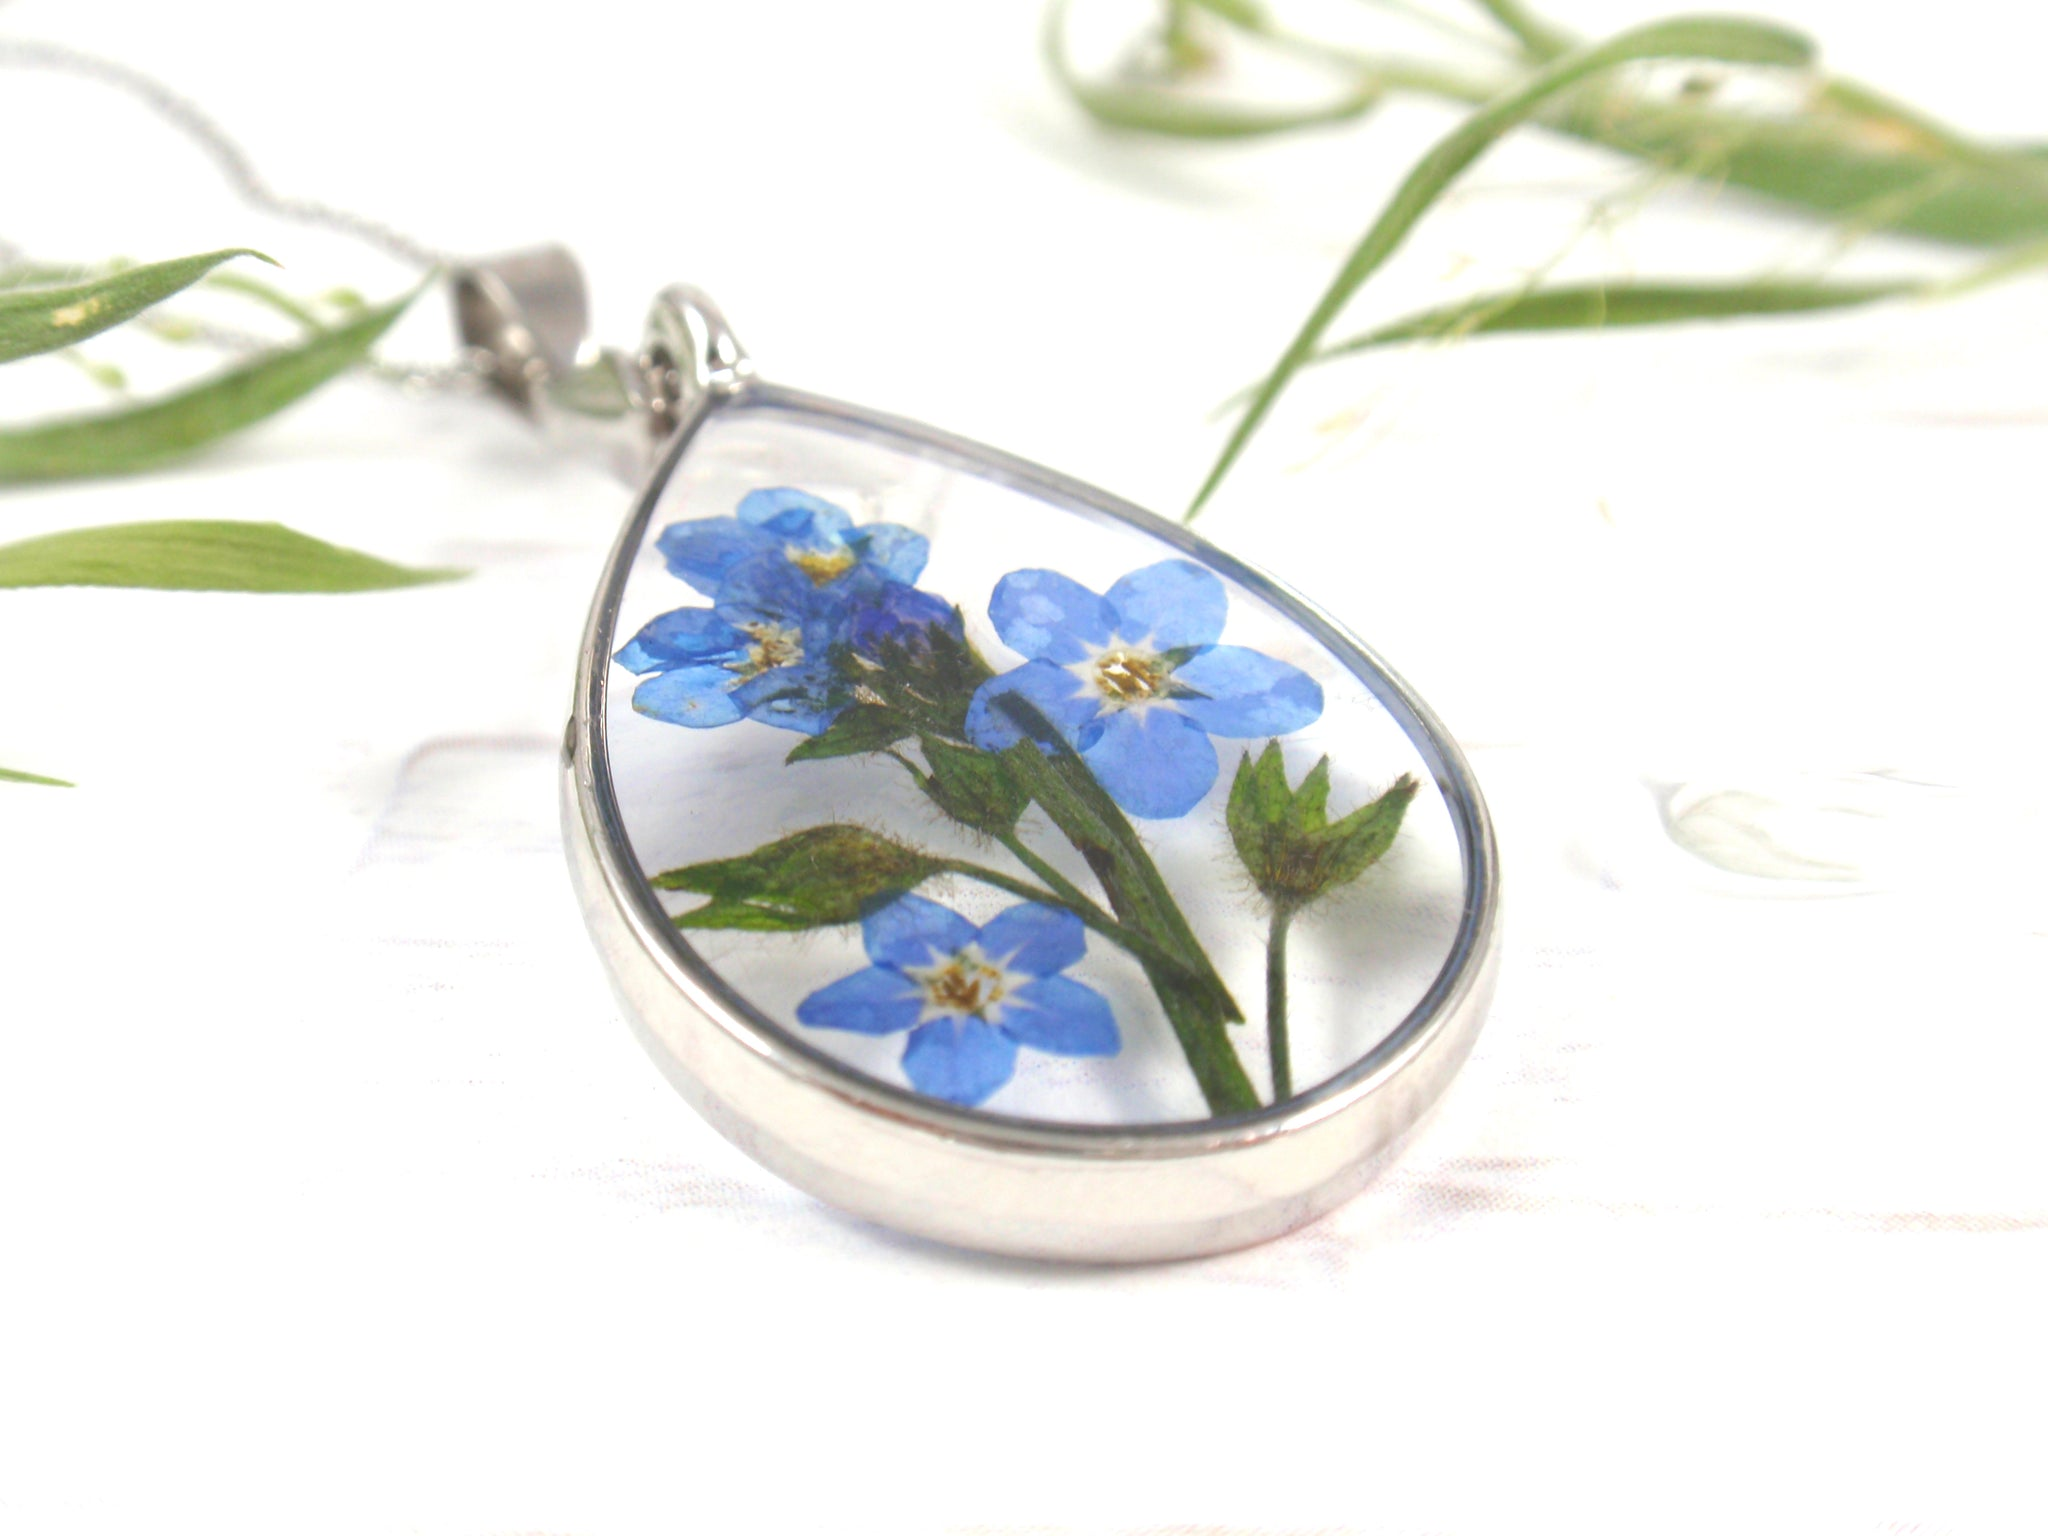 Forget Me Not flower teardrop necklace